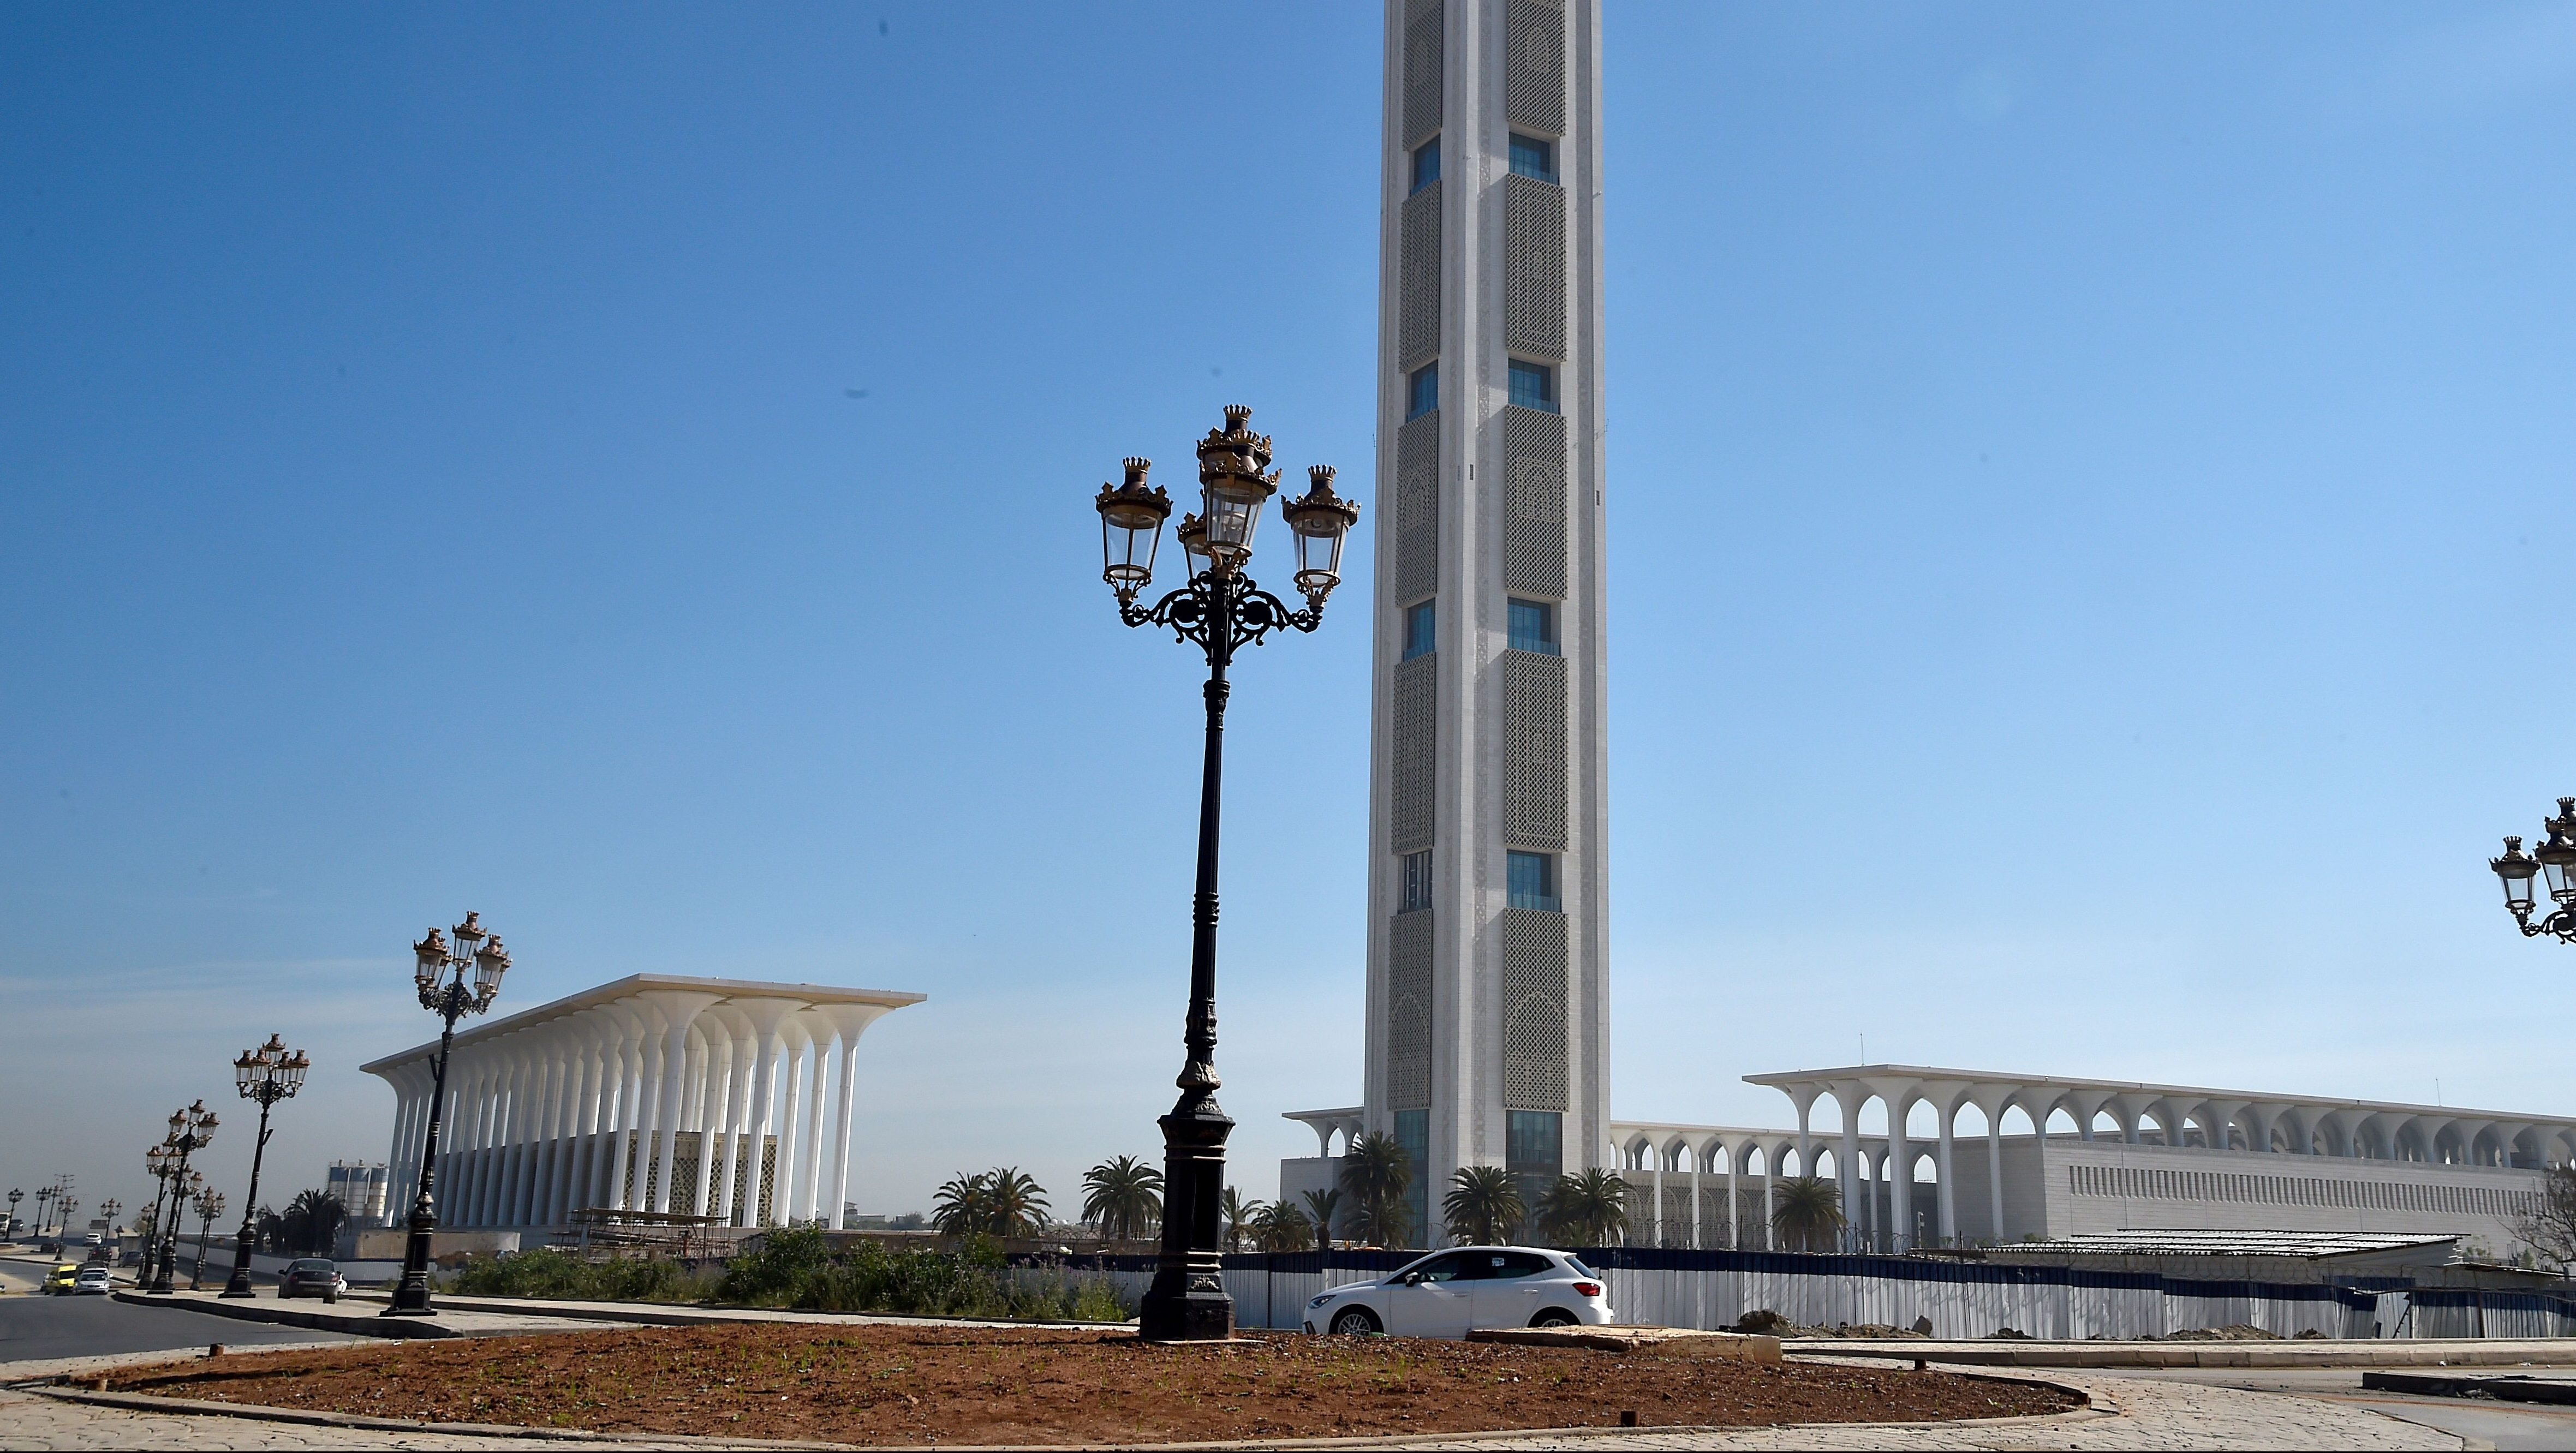 This picture shows the Great Mosque of Algiers, also known as Djamaa el Djazair, in Algiers on April 14, 2019. - Facing the sea, the Great Mosque of Algiers, huge but incomplete work of Abdelaziz Bouteflika pushed to resignation by the protests, will remain the symbol of 20 years of absolute power to the Algerians : megalomania and squandering of public funds.